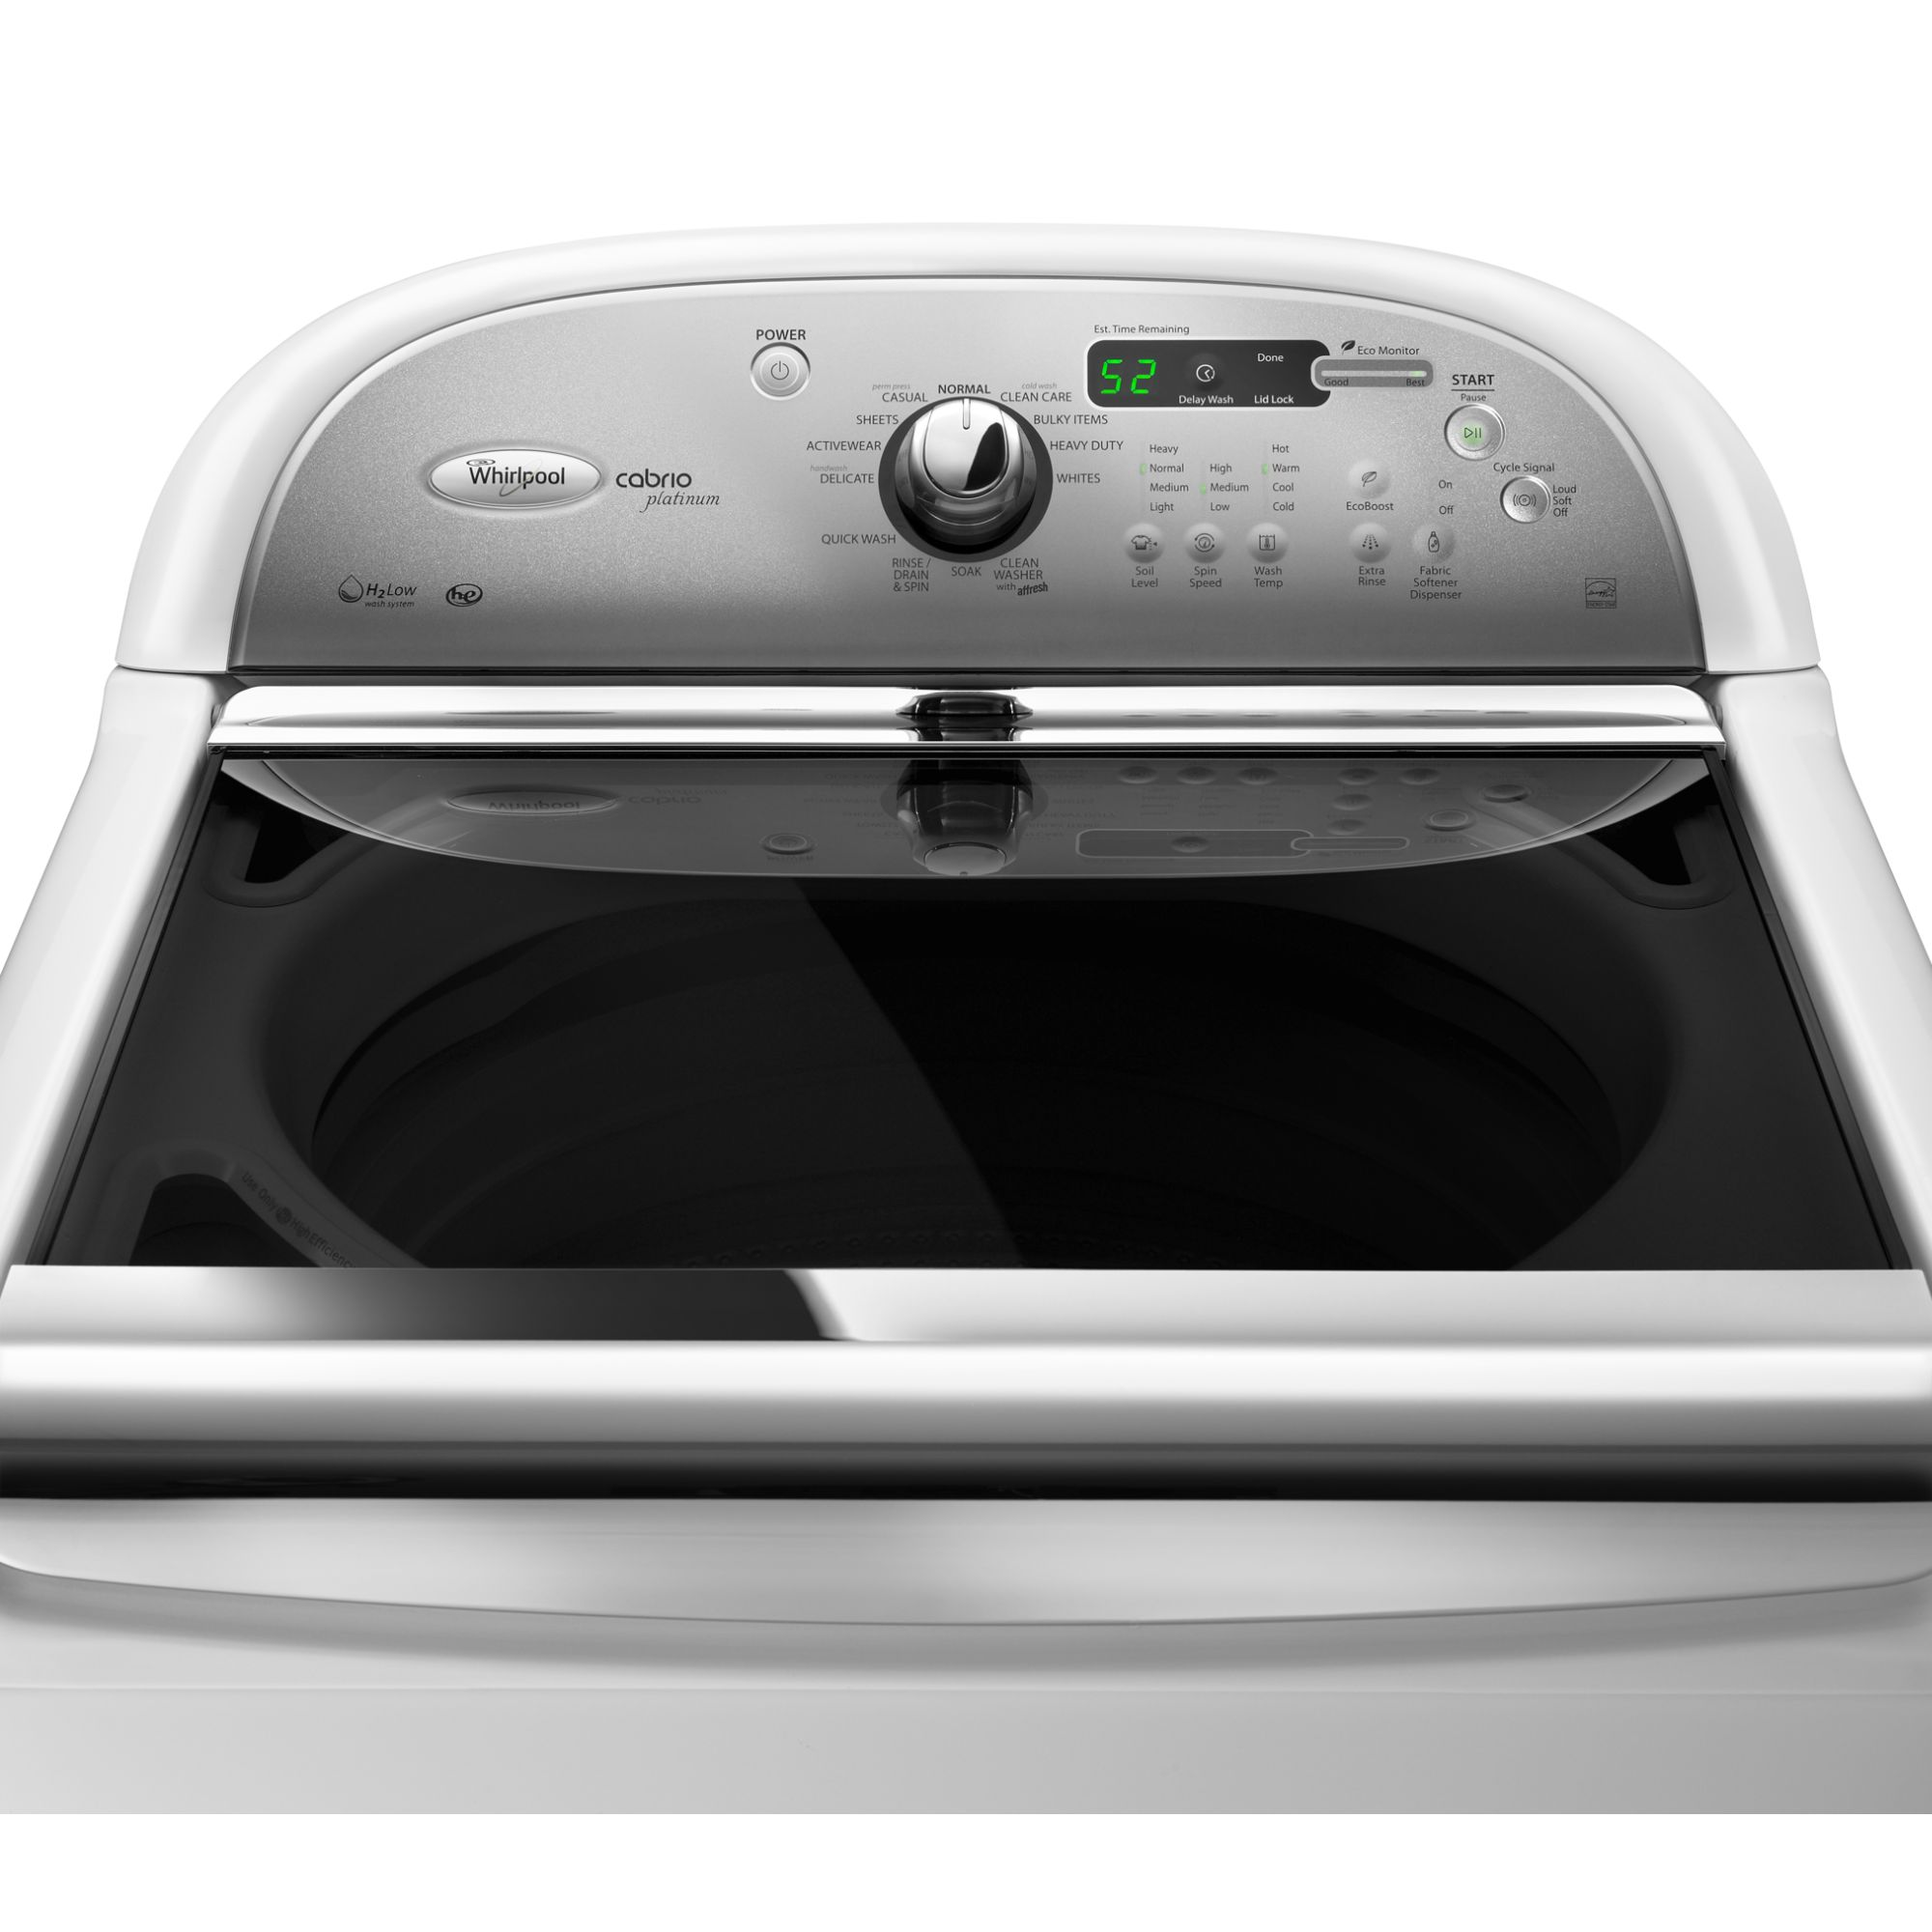 Whirlpool 4.6 cu. ft. High-Efficiency Top-Load Washer w/ Clean Care Cycle - White